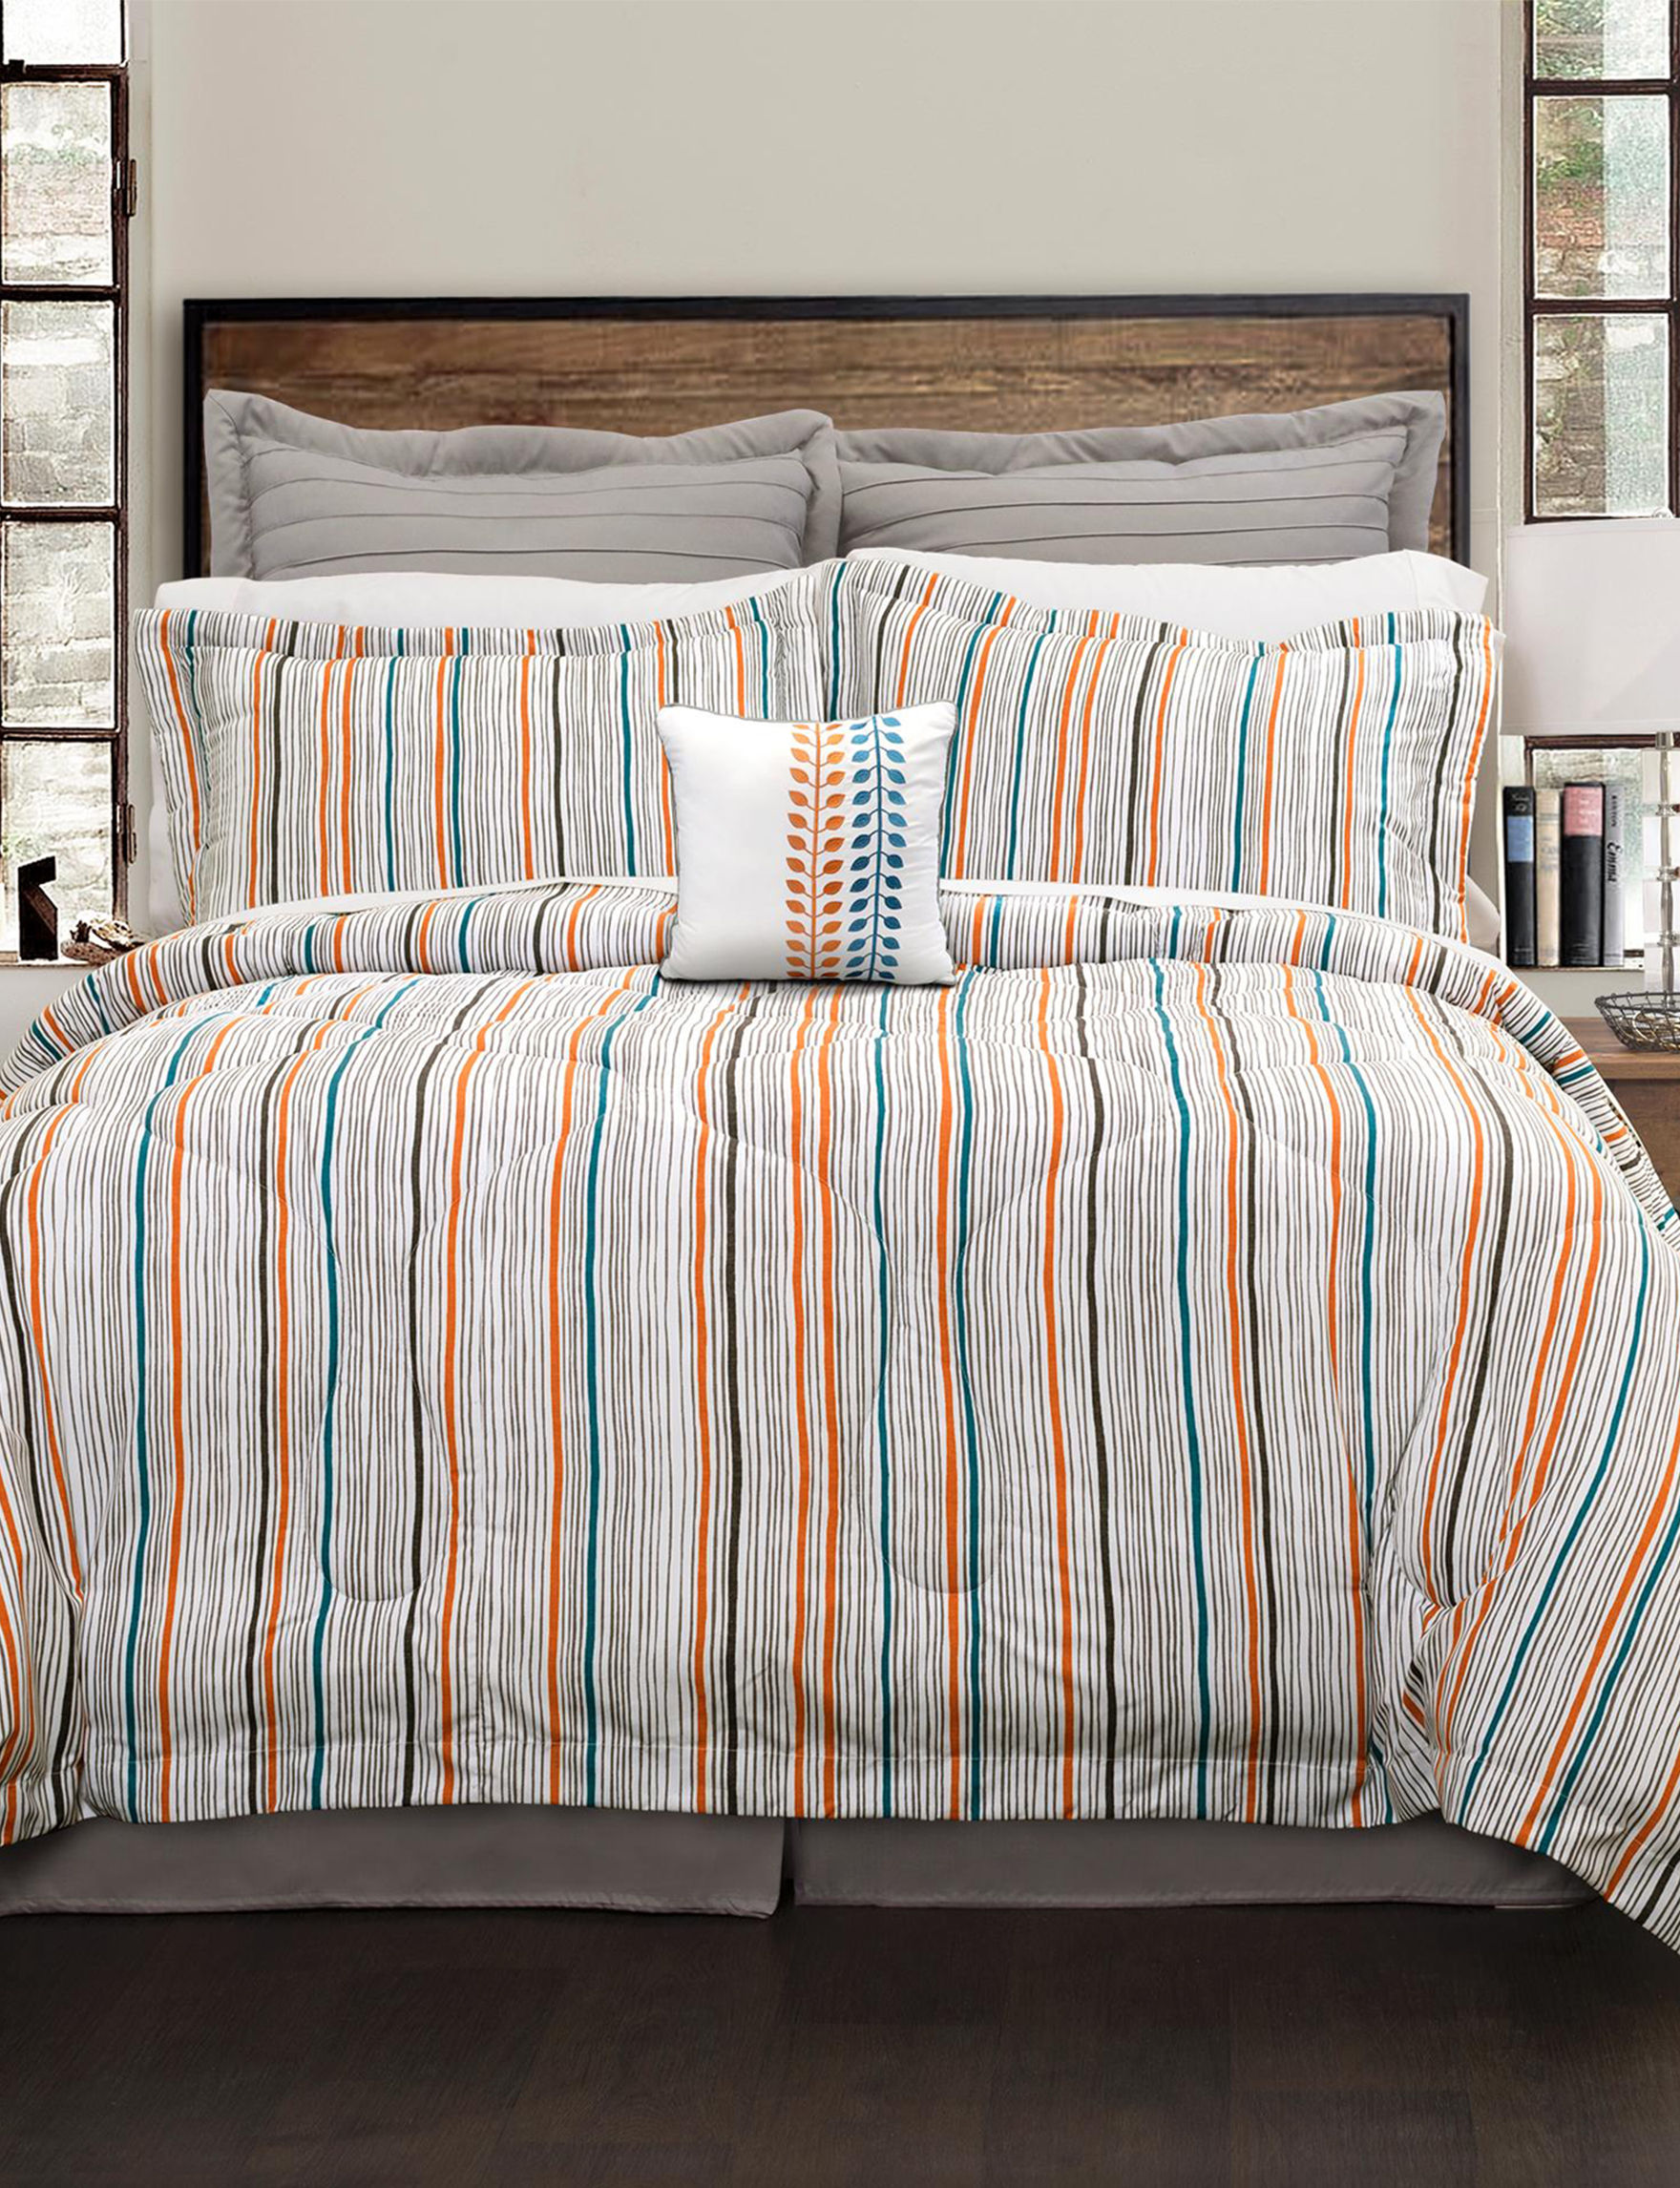 Lush Decor Orange/Blue Comforters & Comforter Sets